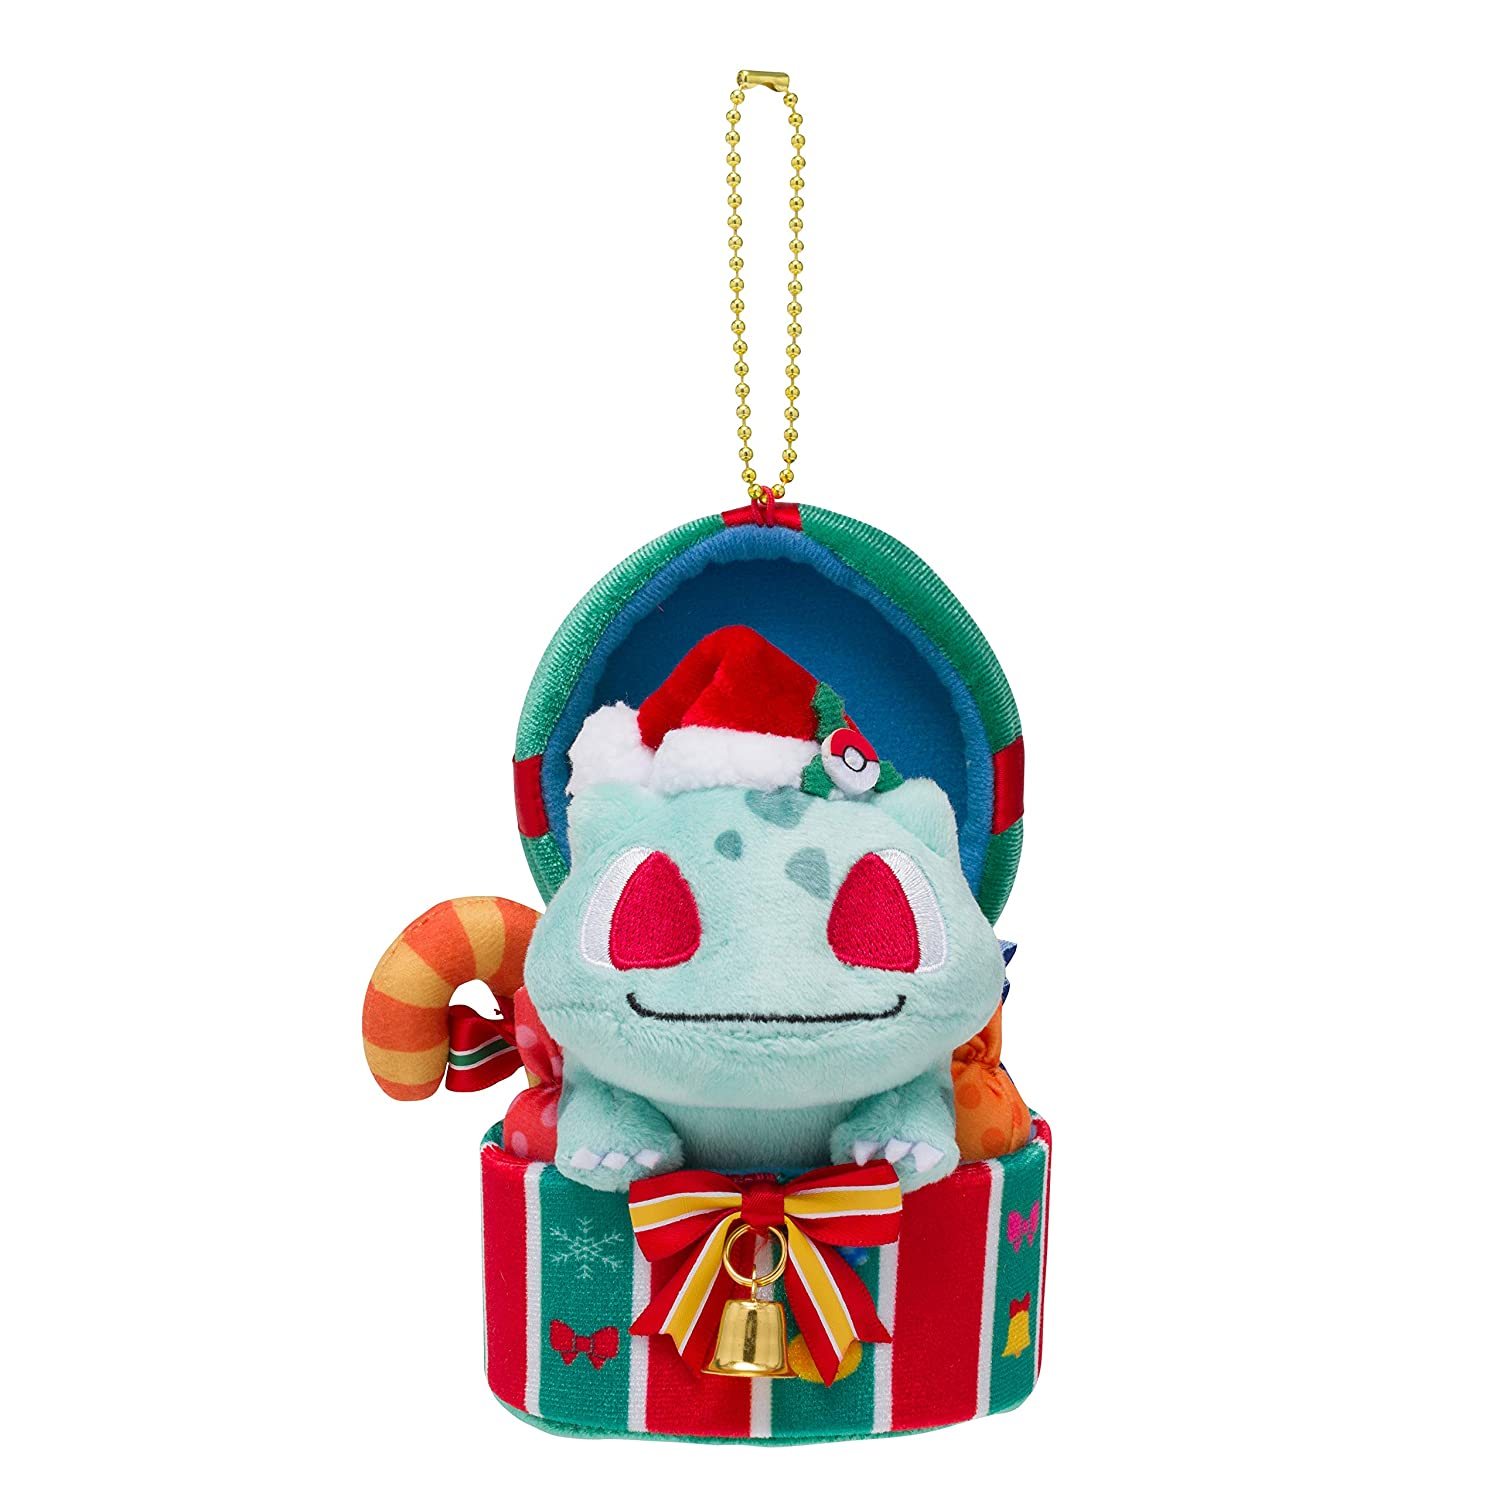 Image result for christmas bulbasaur plush